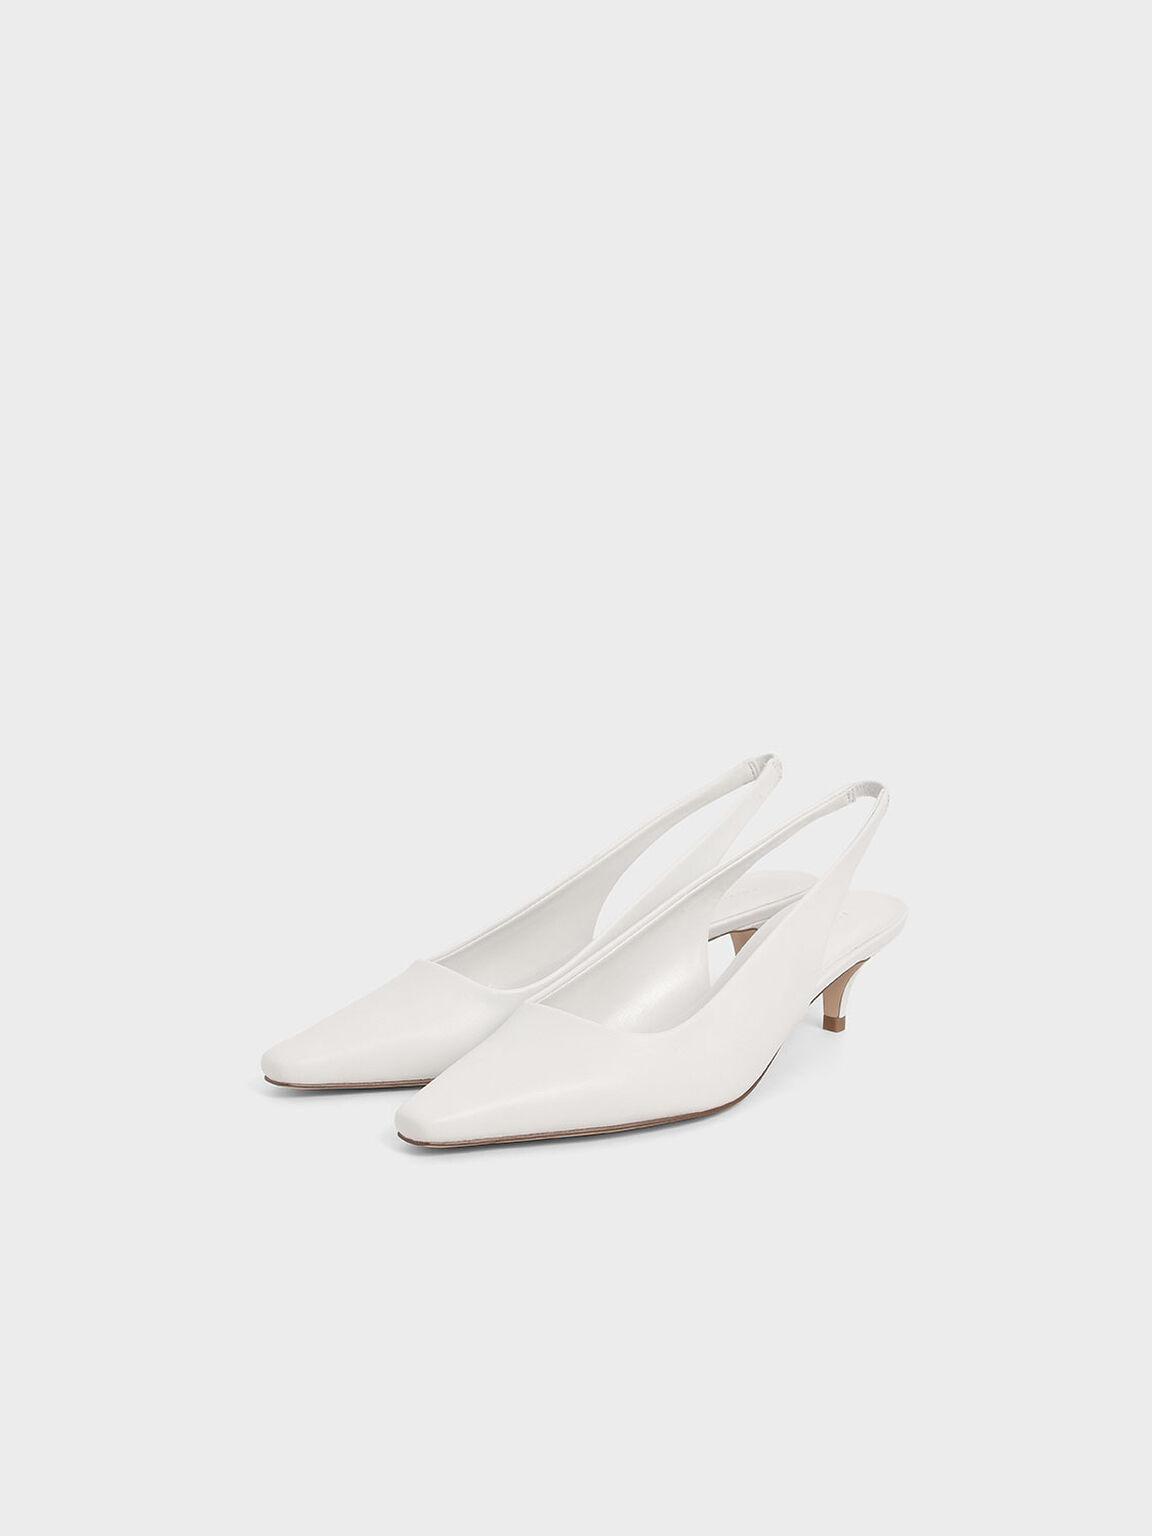 Kitten Heel Slingback Pumps, White, hi-res